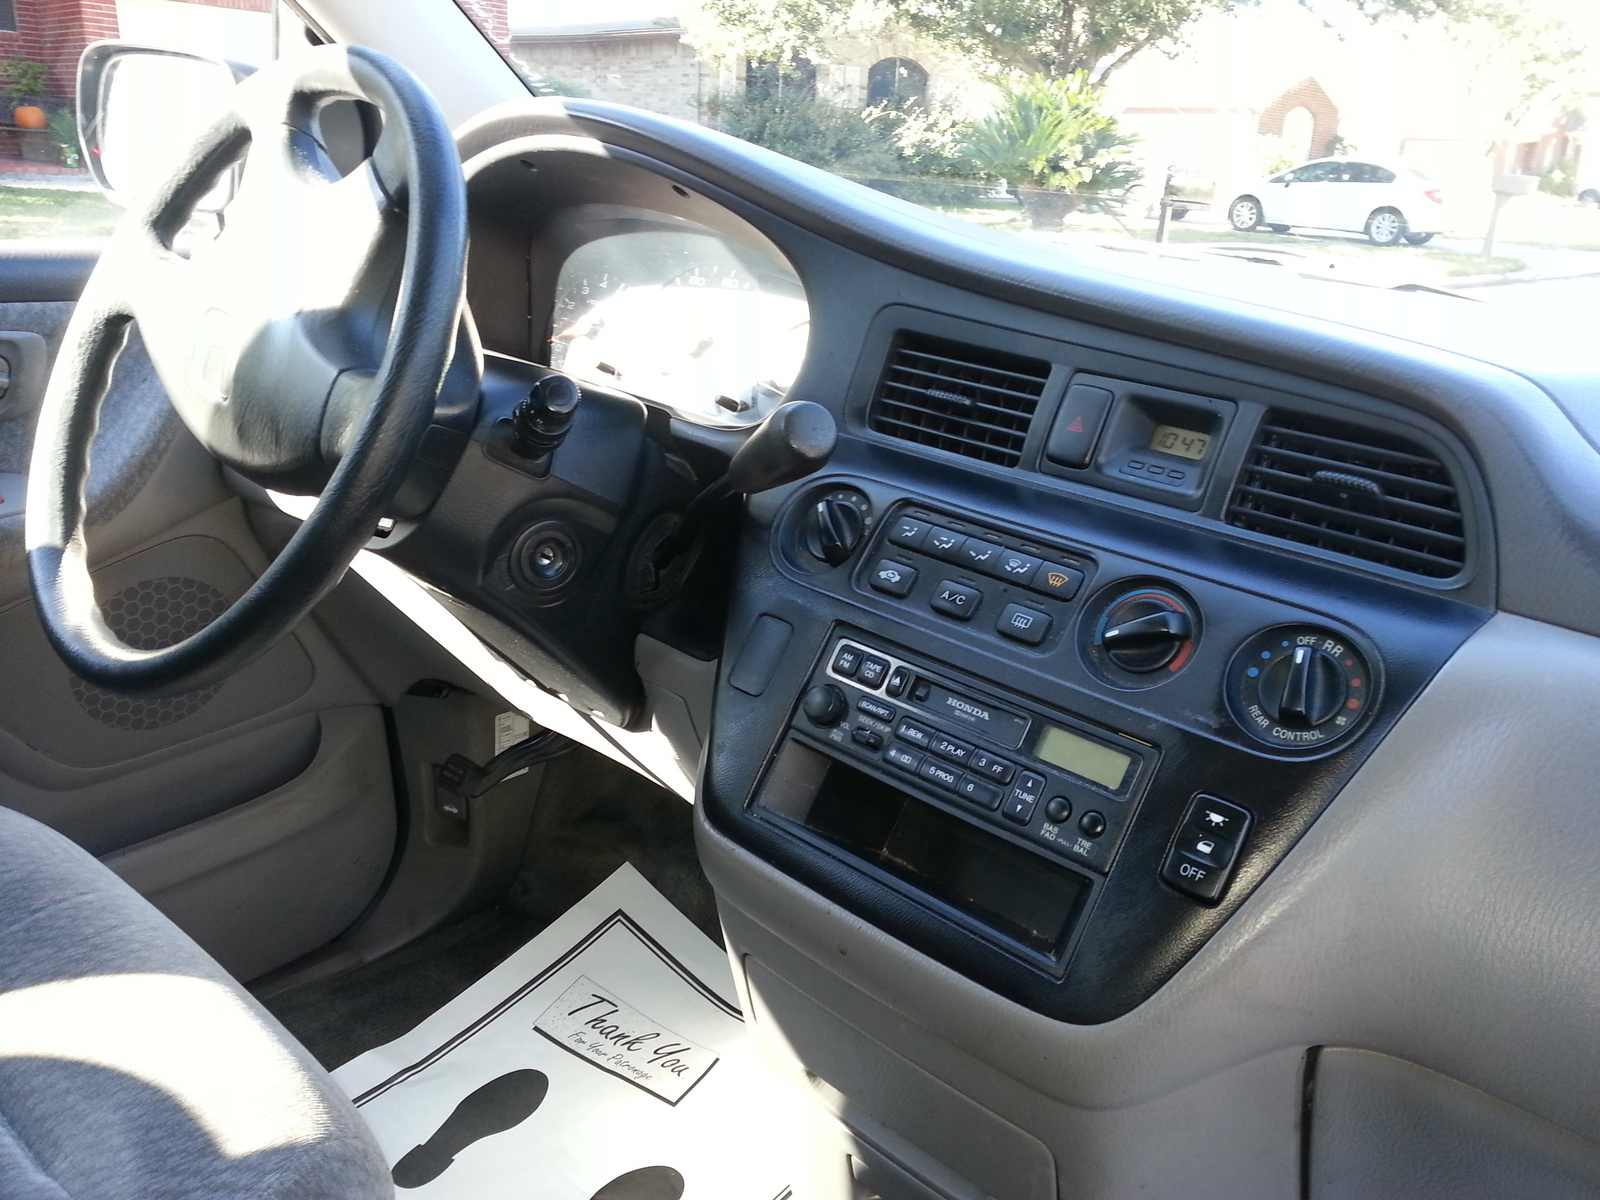 2000 Honda Odyssey Interior Pictures Cargurus